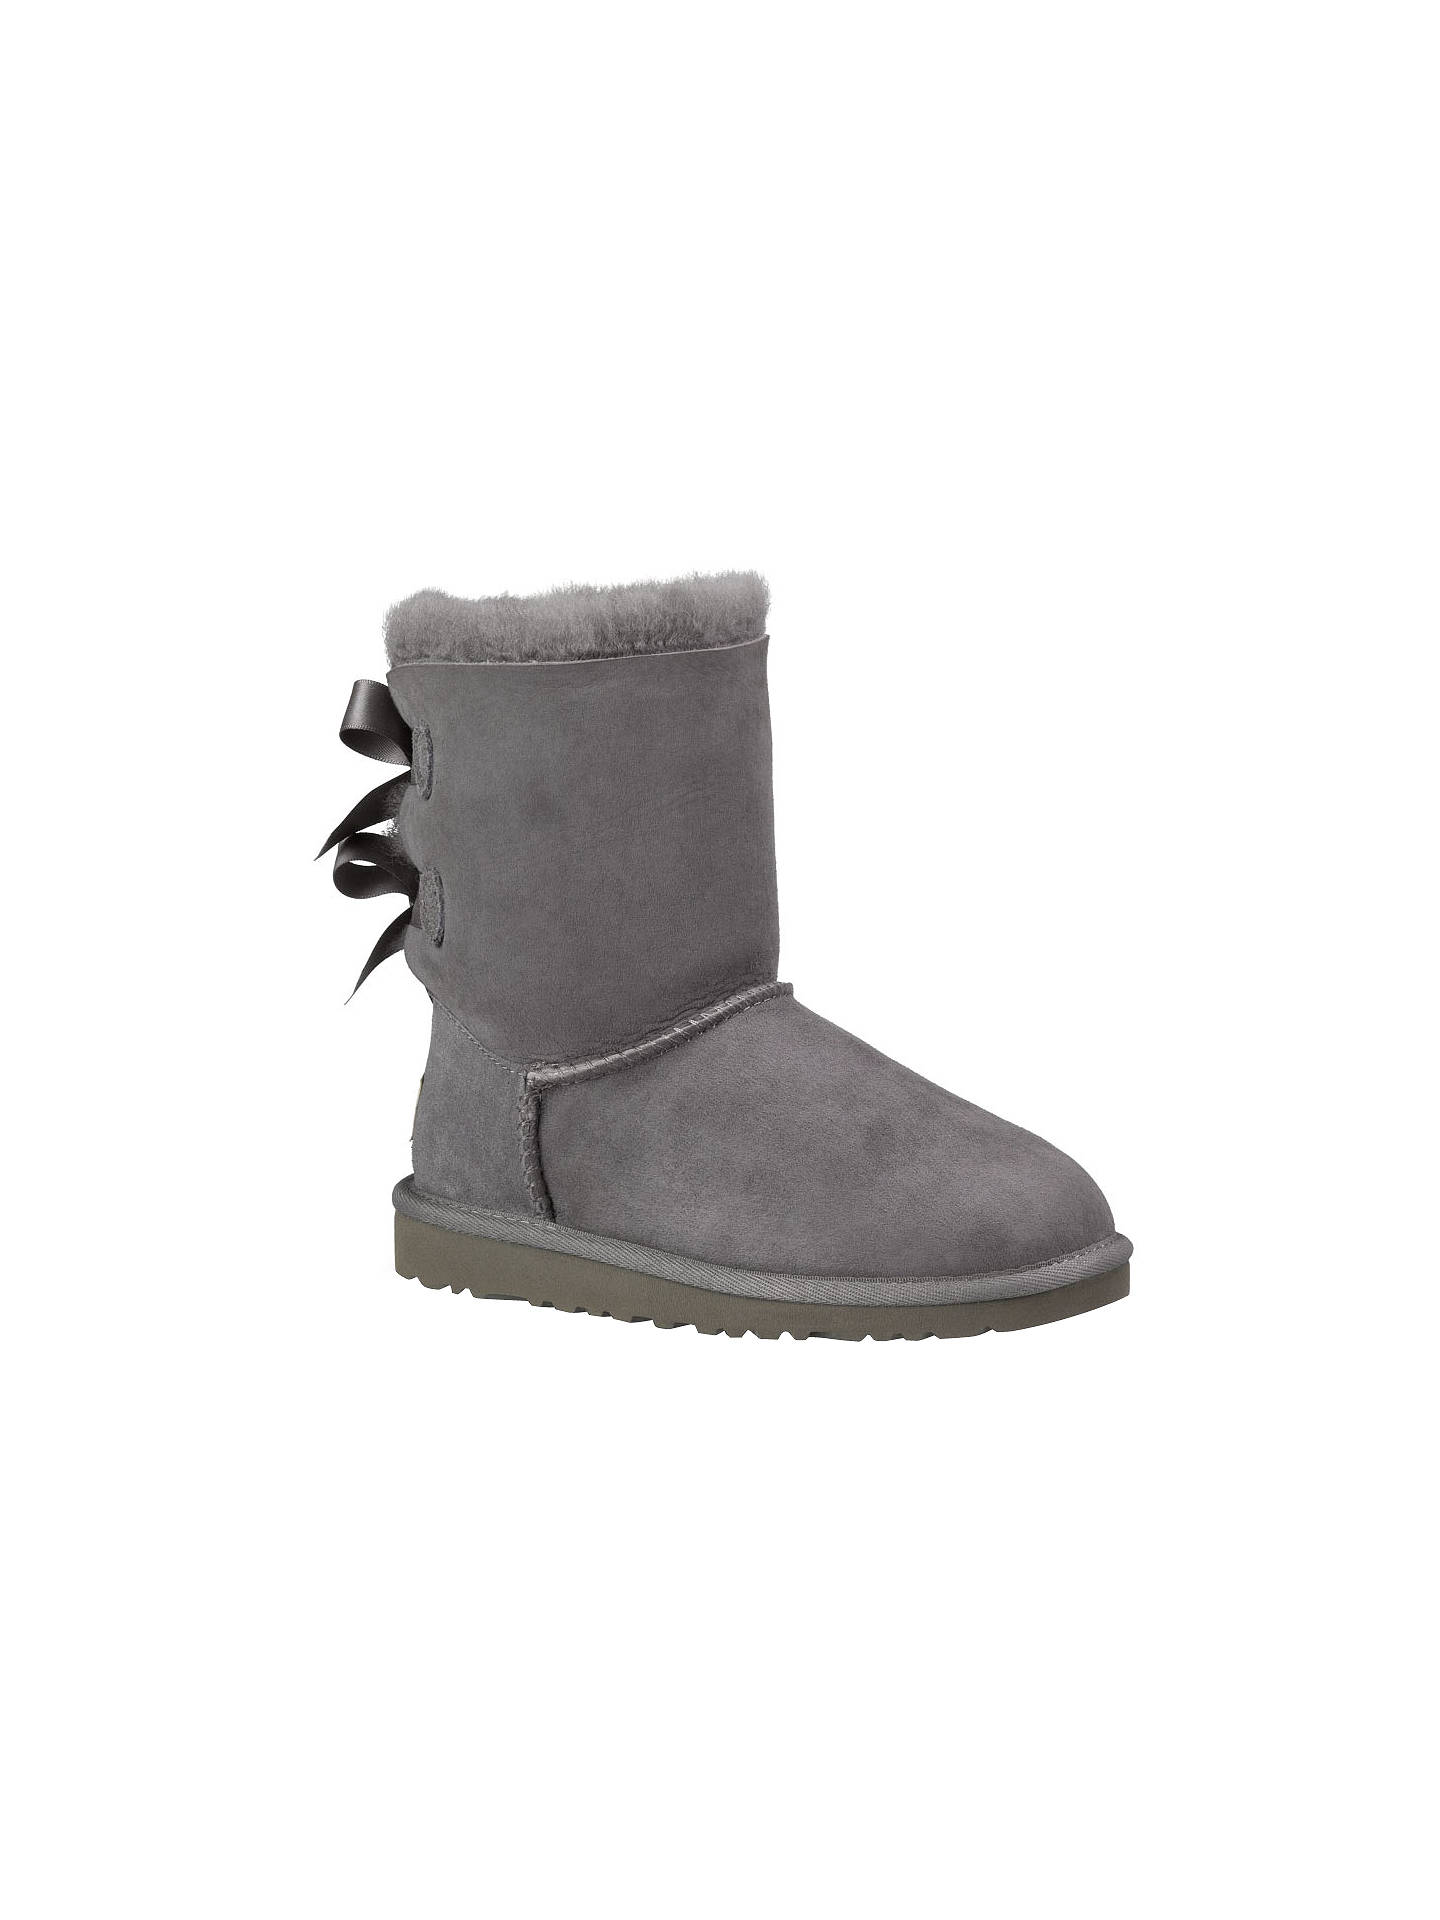 e1e4c2b44d1 UGG Children's Bailey Bow Boots, Grey at John Lewis & Partners